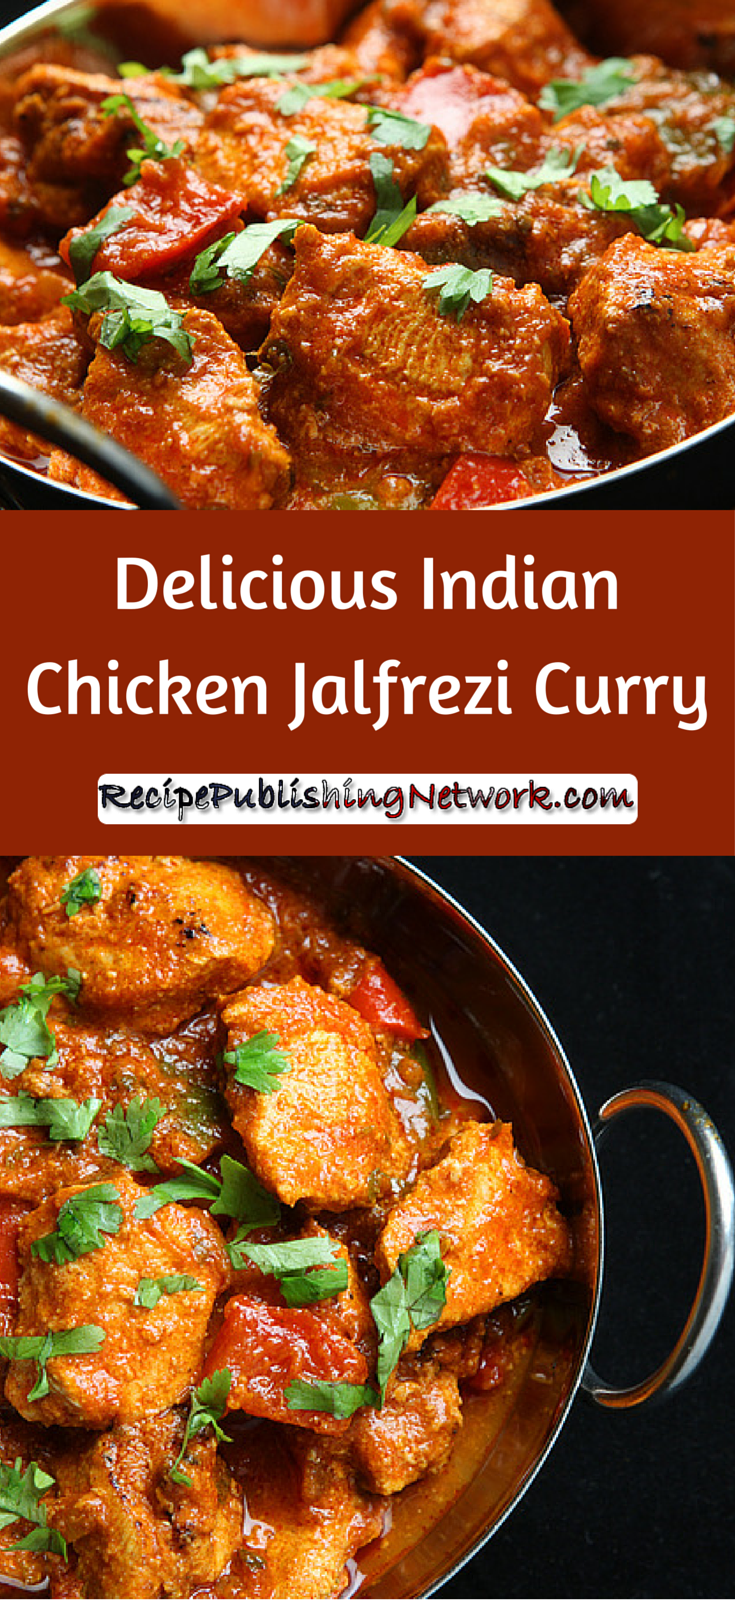 Delicious Indian Chicken Jalfrezi Curry